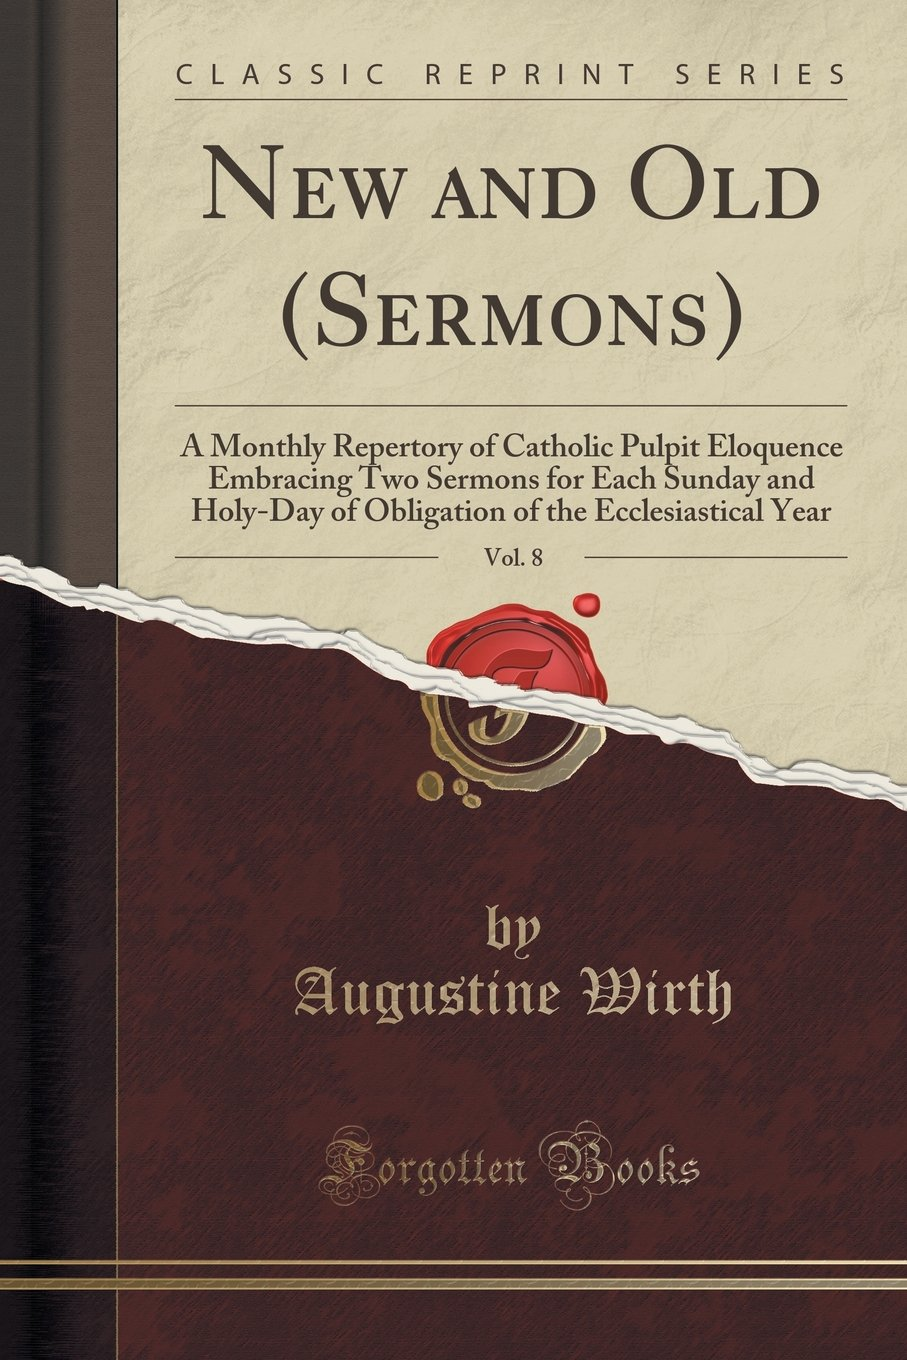 Download New and Old (Sermons), Vol. 8: A Monthly Repertory of Catholic Pulpit Eloquence Embracing Two Sermons for Each Sunday and Holy-Day of Obligation of the Ecclesiastical Year (Classic Reprint) pdf